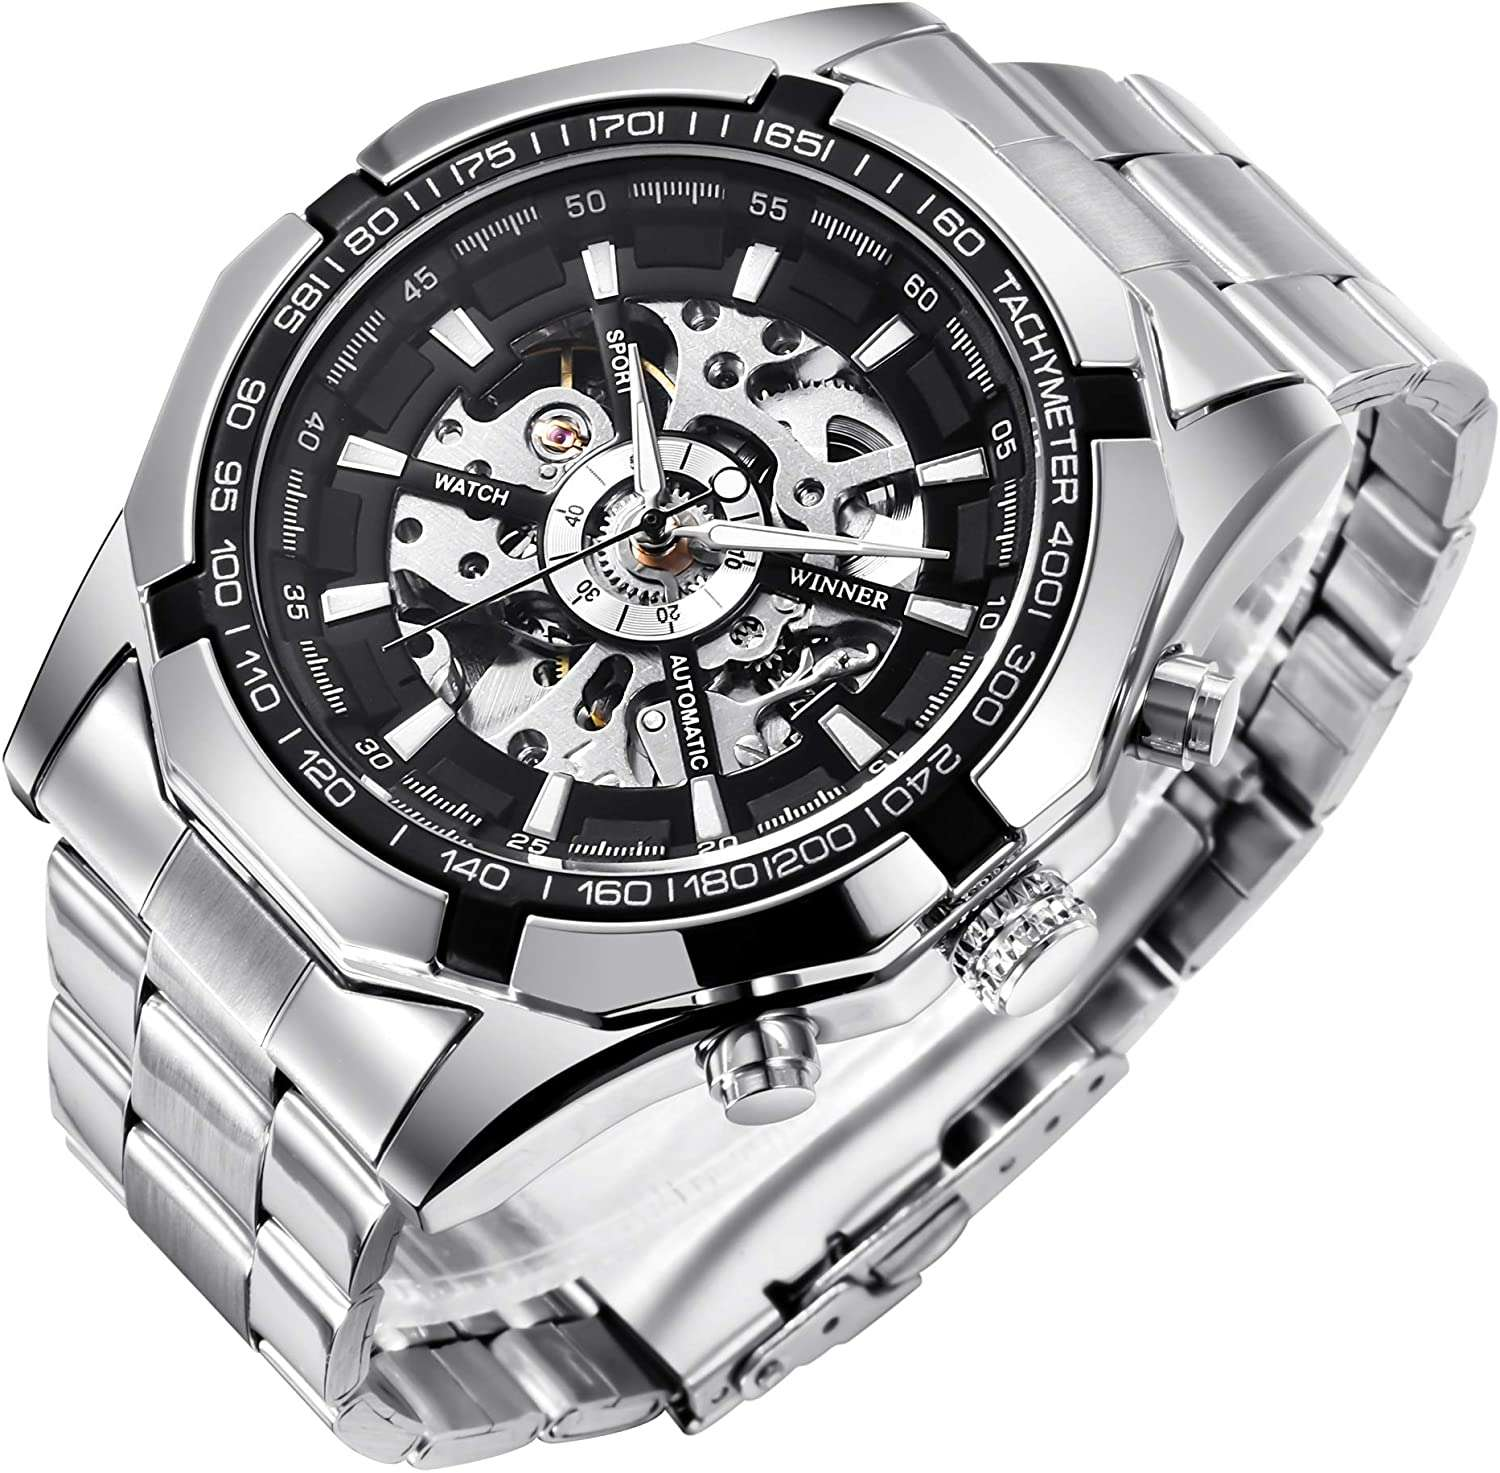 Stainless Steel Watch Mechanical Manufacturers